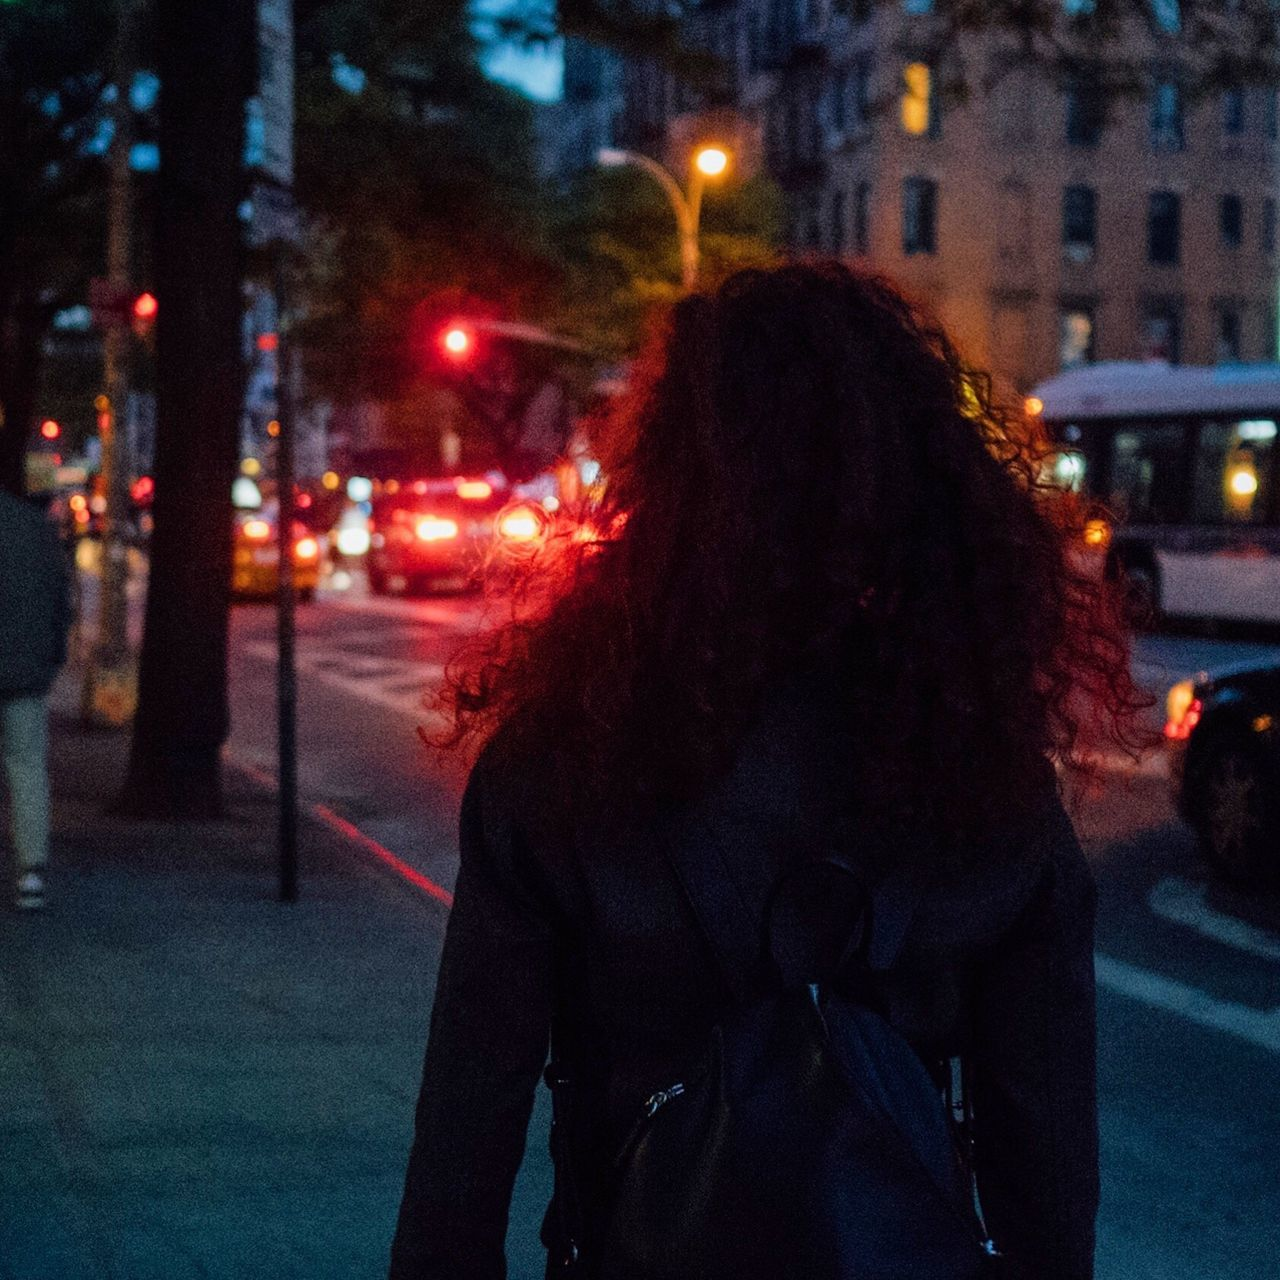 """""""Do not go gentle into that good night. Rage, rage against the dying of the light."""" - Dylan Thomas 1914 - 1953 Night Building Exterior Rear View Street Real People Illuminated Built Structure One Person Architecture City Outdoors Lifestyles City Life Women Long Hair Focus On Foreground Leisure Activity Road Young Adult Warm Clothing BYOPaper! The Street Photographer - 2017 EyeEm Awards"""